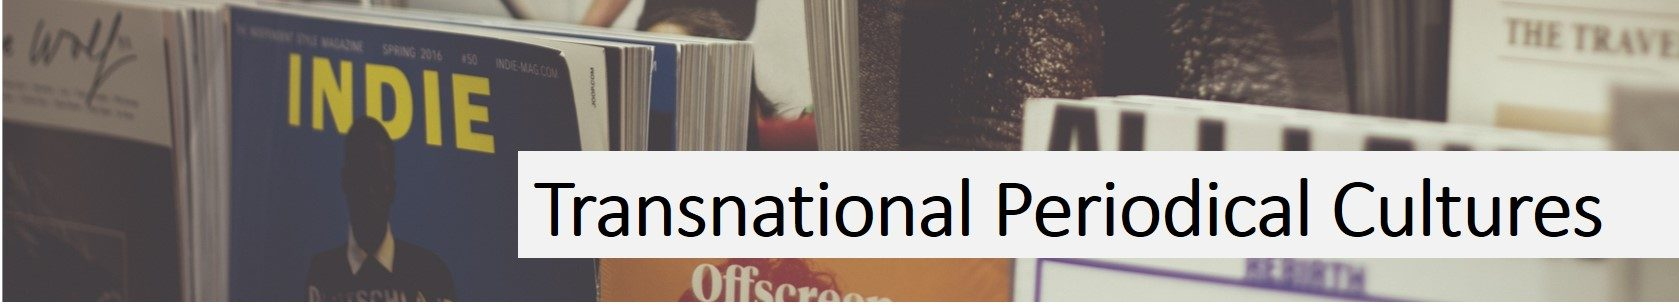 Transnational Periodical Cultures